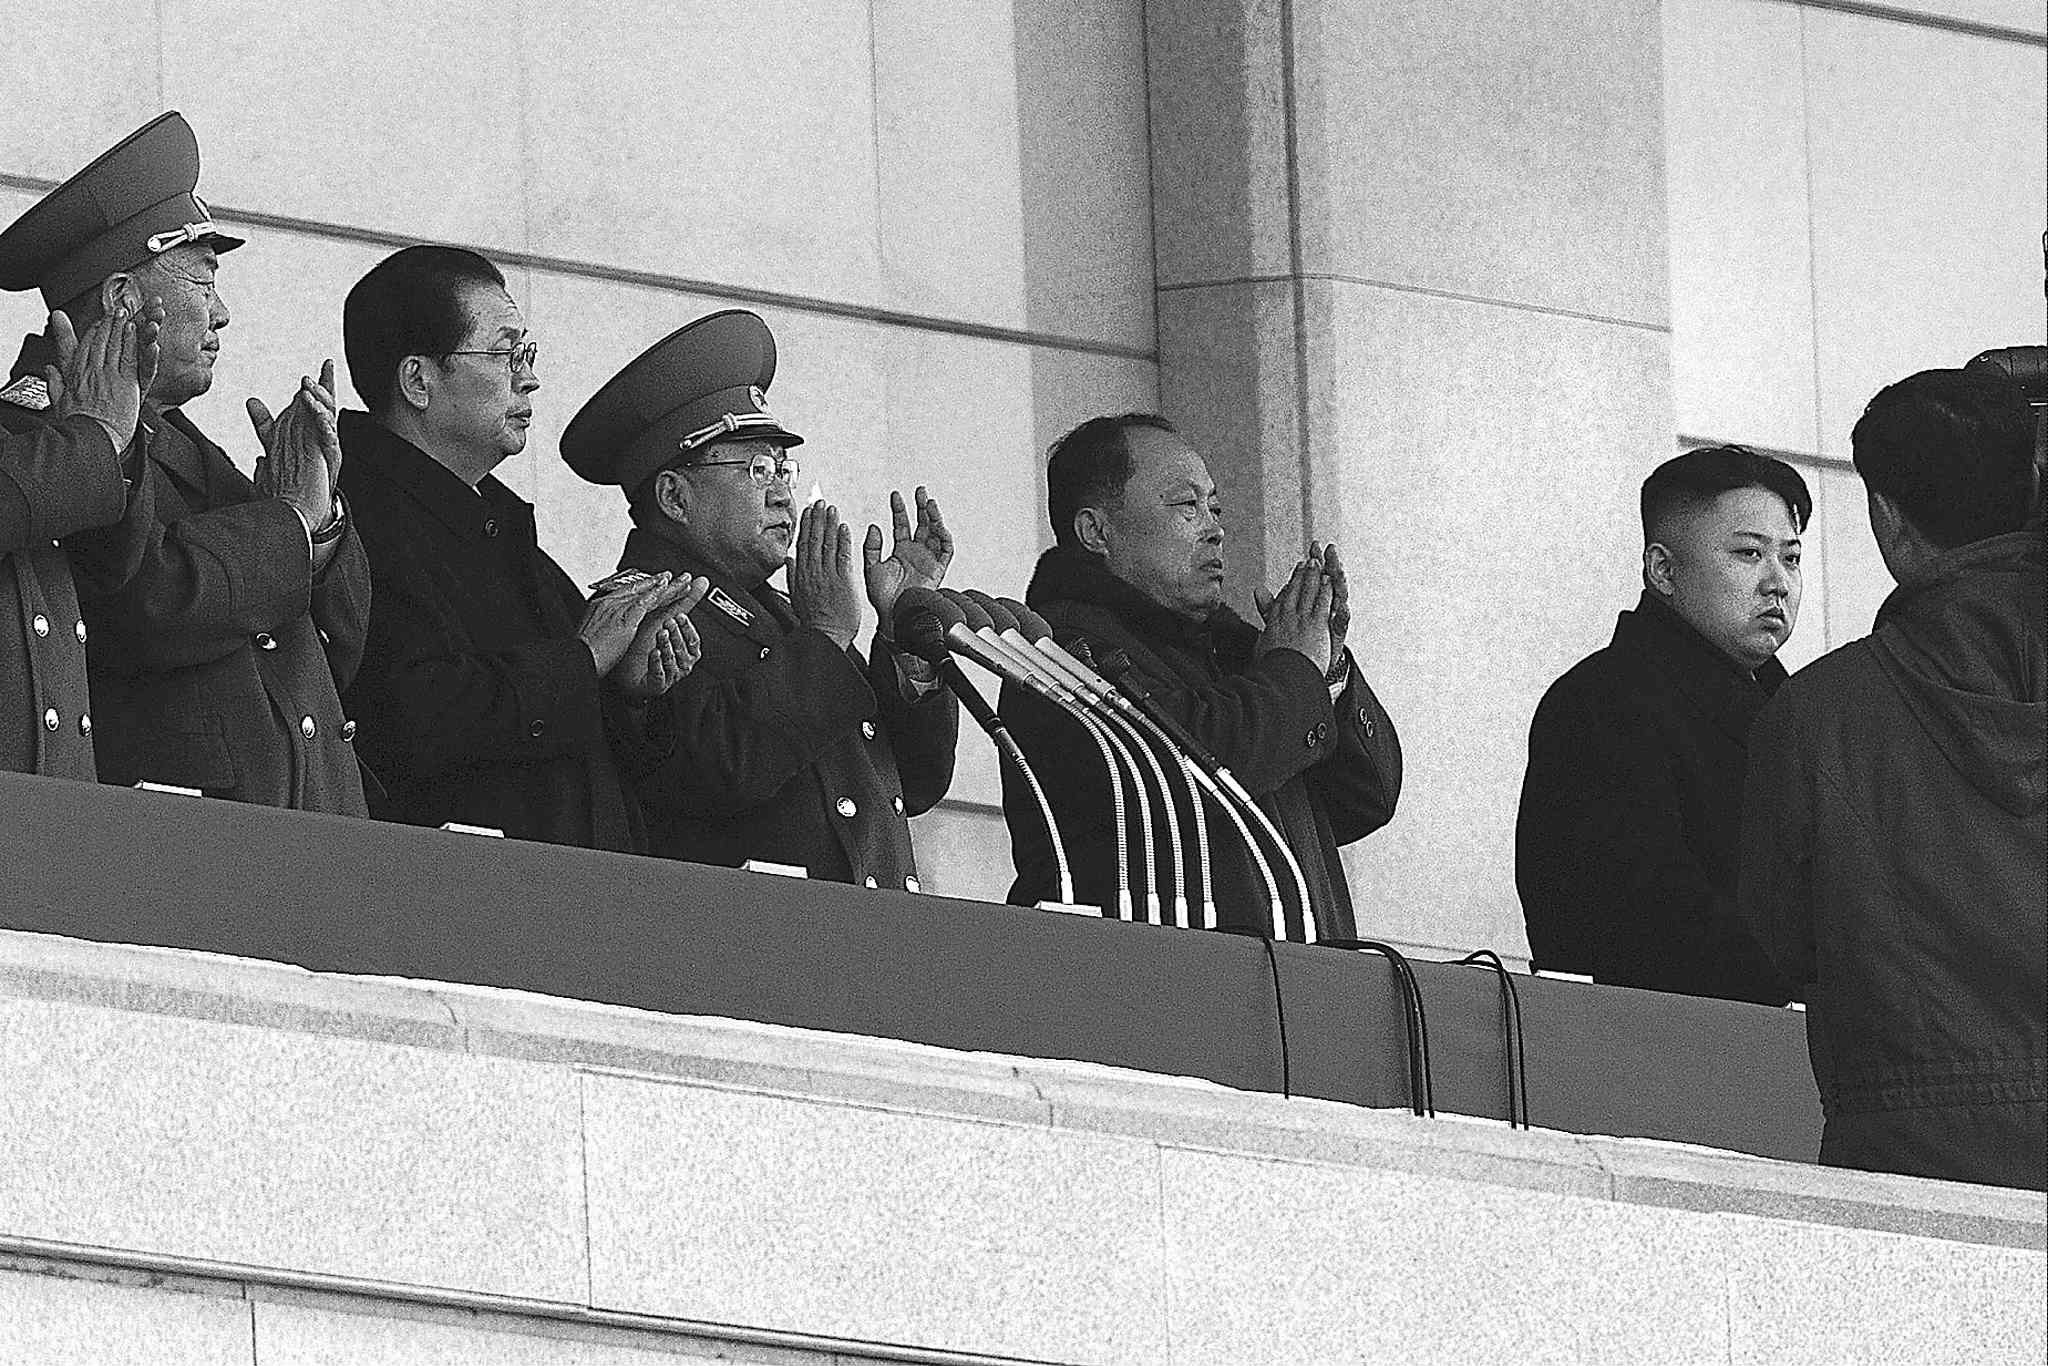 North Korean leader Kim Jong Un (right) is seen in this 2012 photo with his uncle Jang Song Thaek (second from left). Jang, considered the No. 2 official, was executed last week.